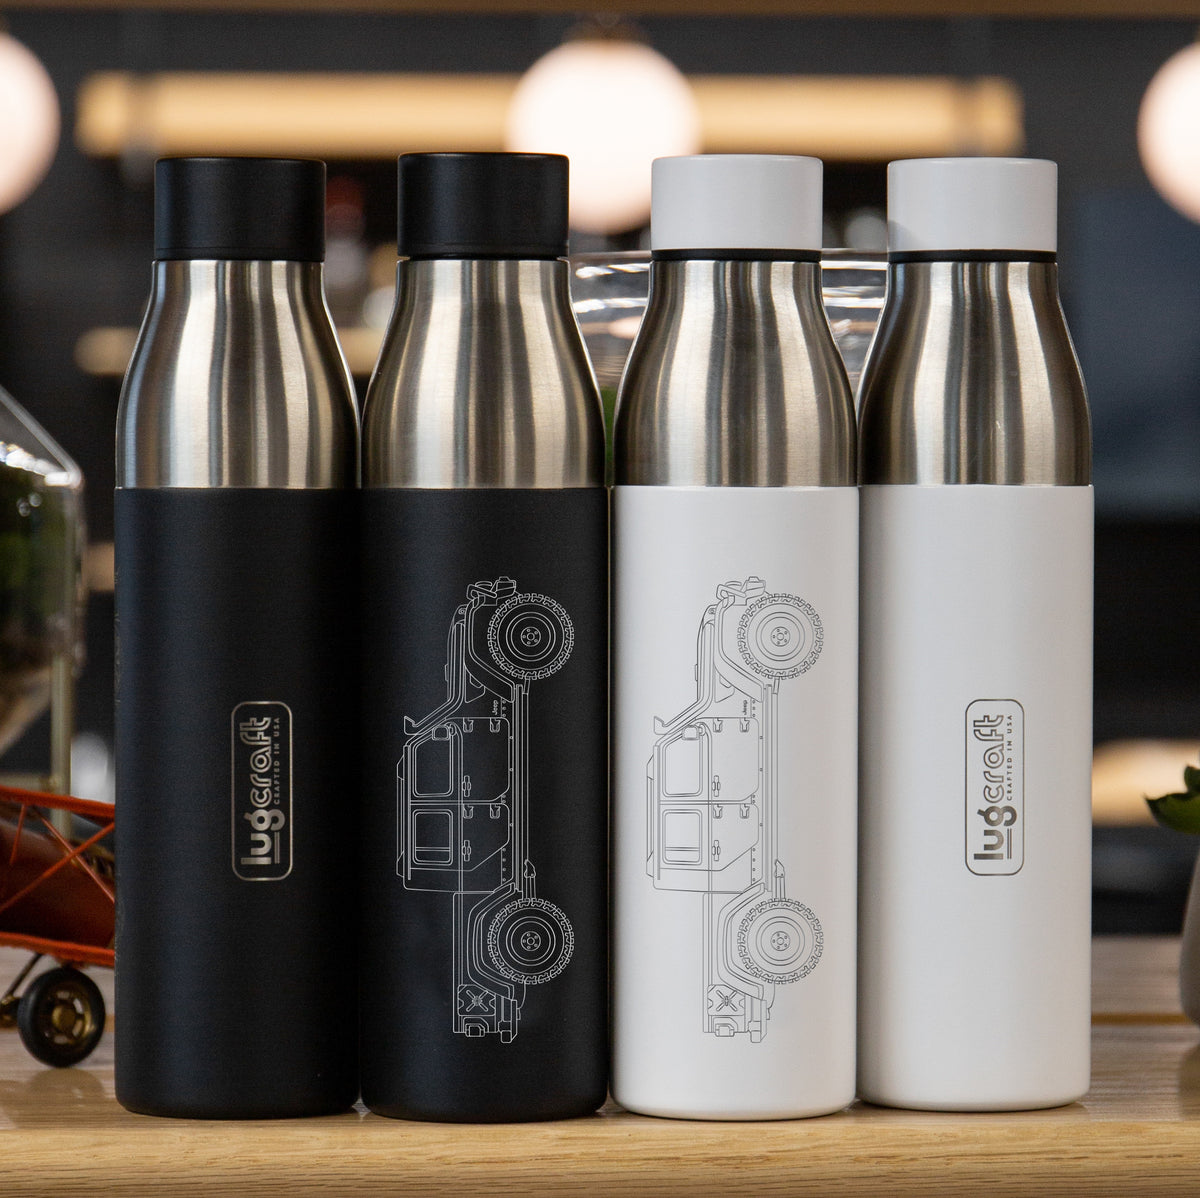 Jeep Gladiator Insulated Stainless Steel Water Bottle - 21 oz